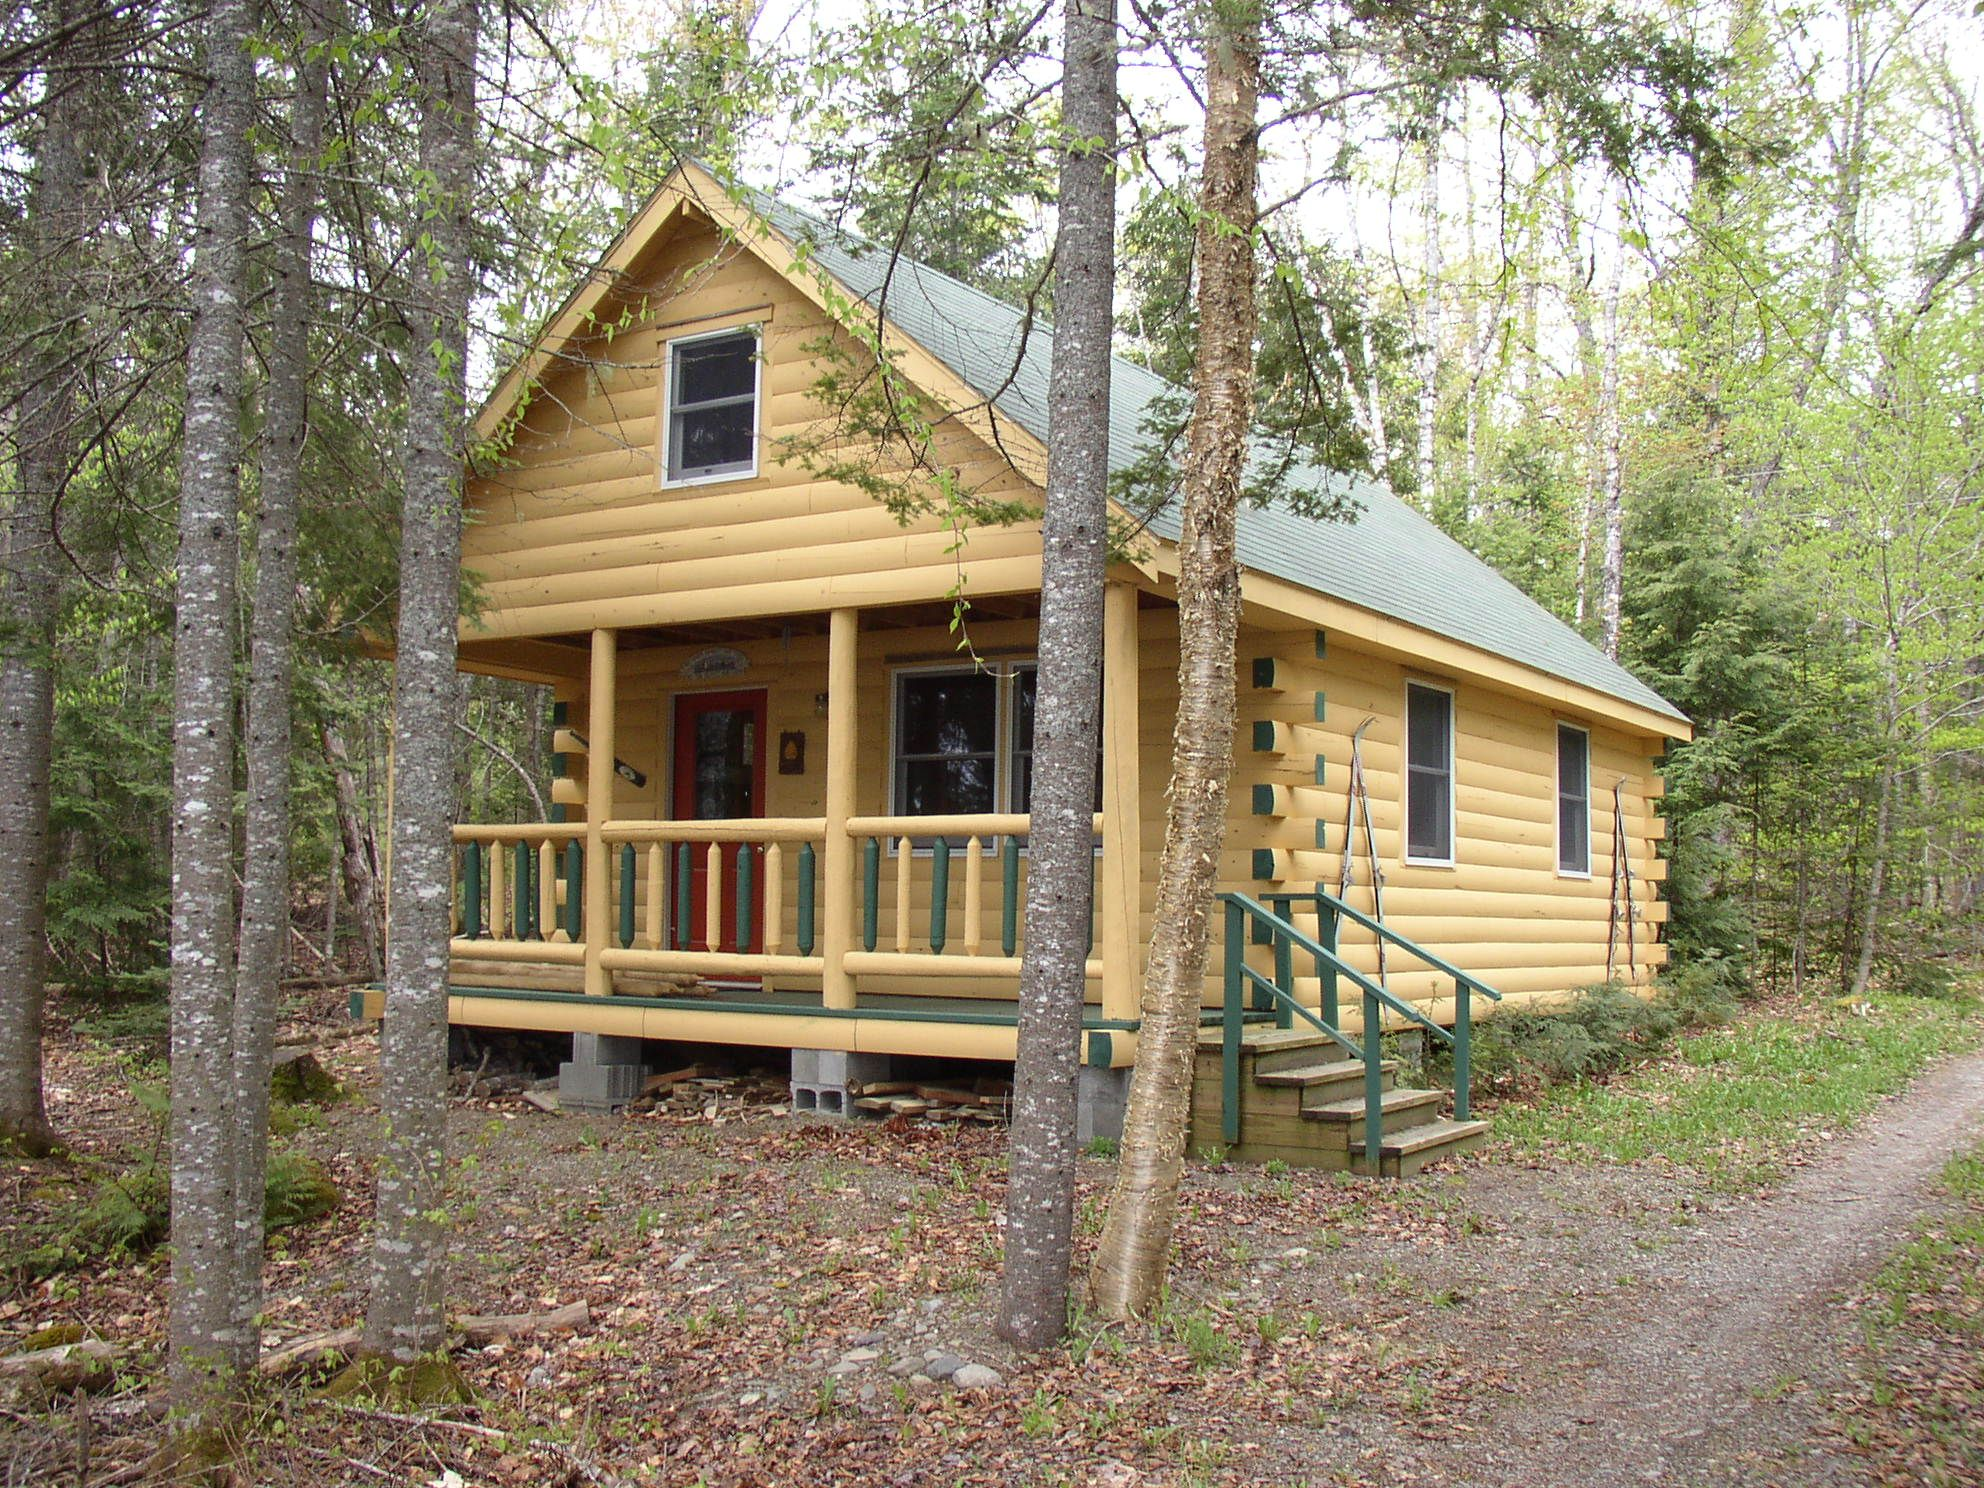 setting sale lovely in main cabin above images nh the on image lake click larger at a for log squam booking cabins big